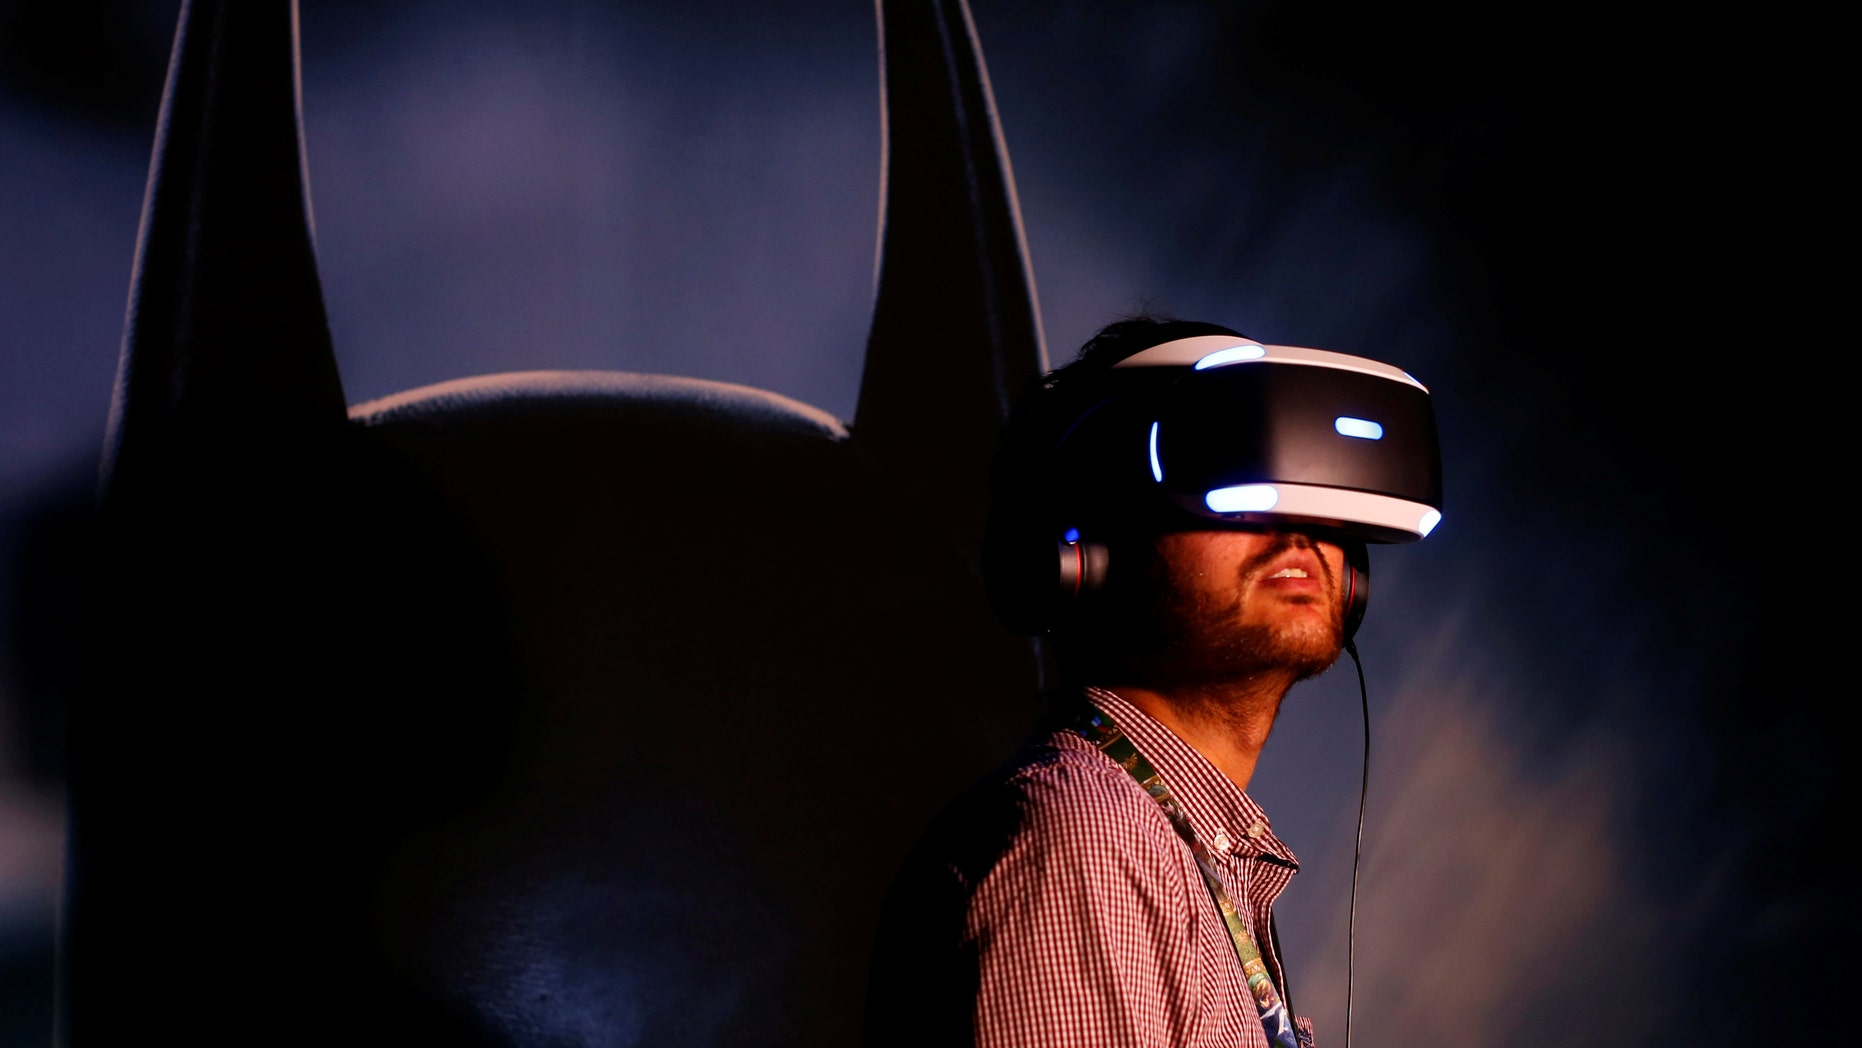 People try the new Sony VR headset during Sony Corporation's PlayStation 4 E3 2016 event in Los Angeles, California, U.S. June 13, 2016. (REUTERS/Mike Blake)